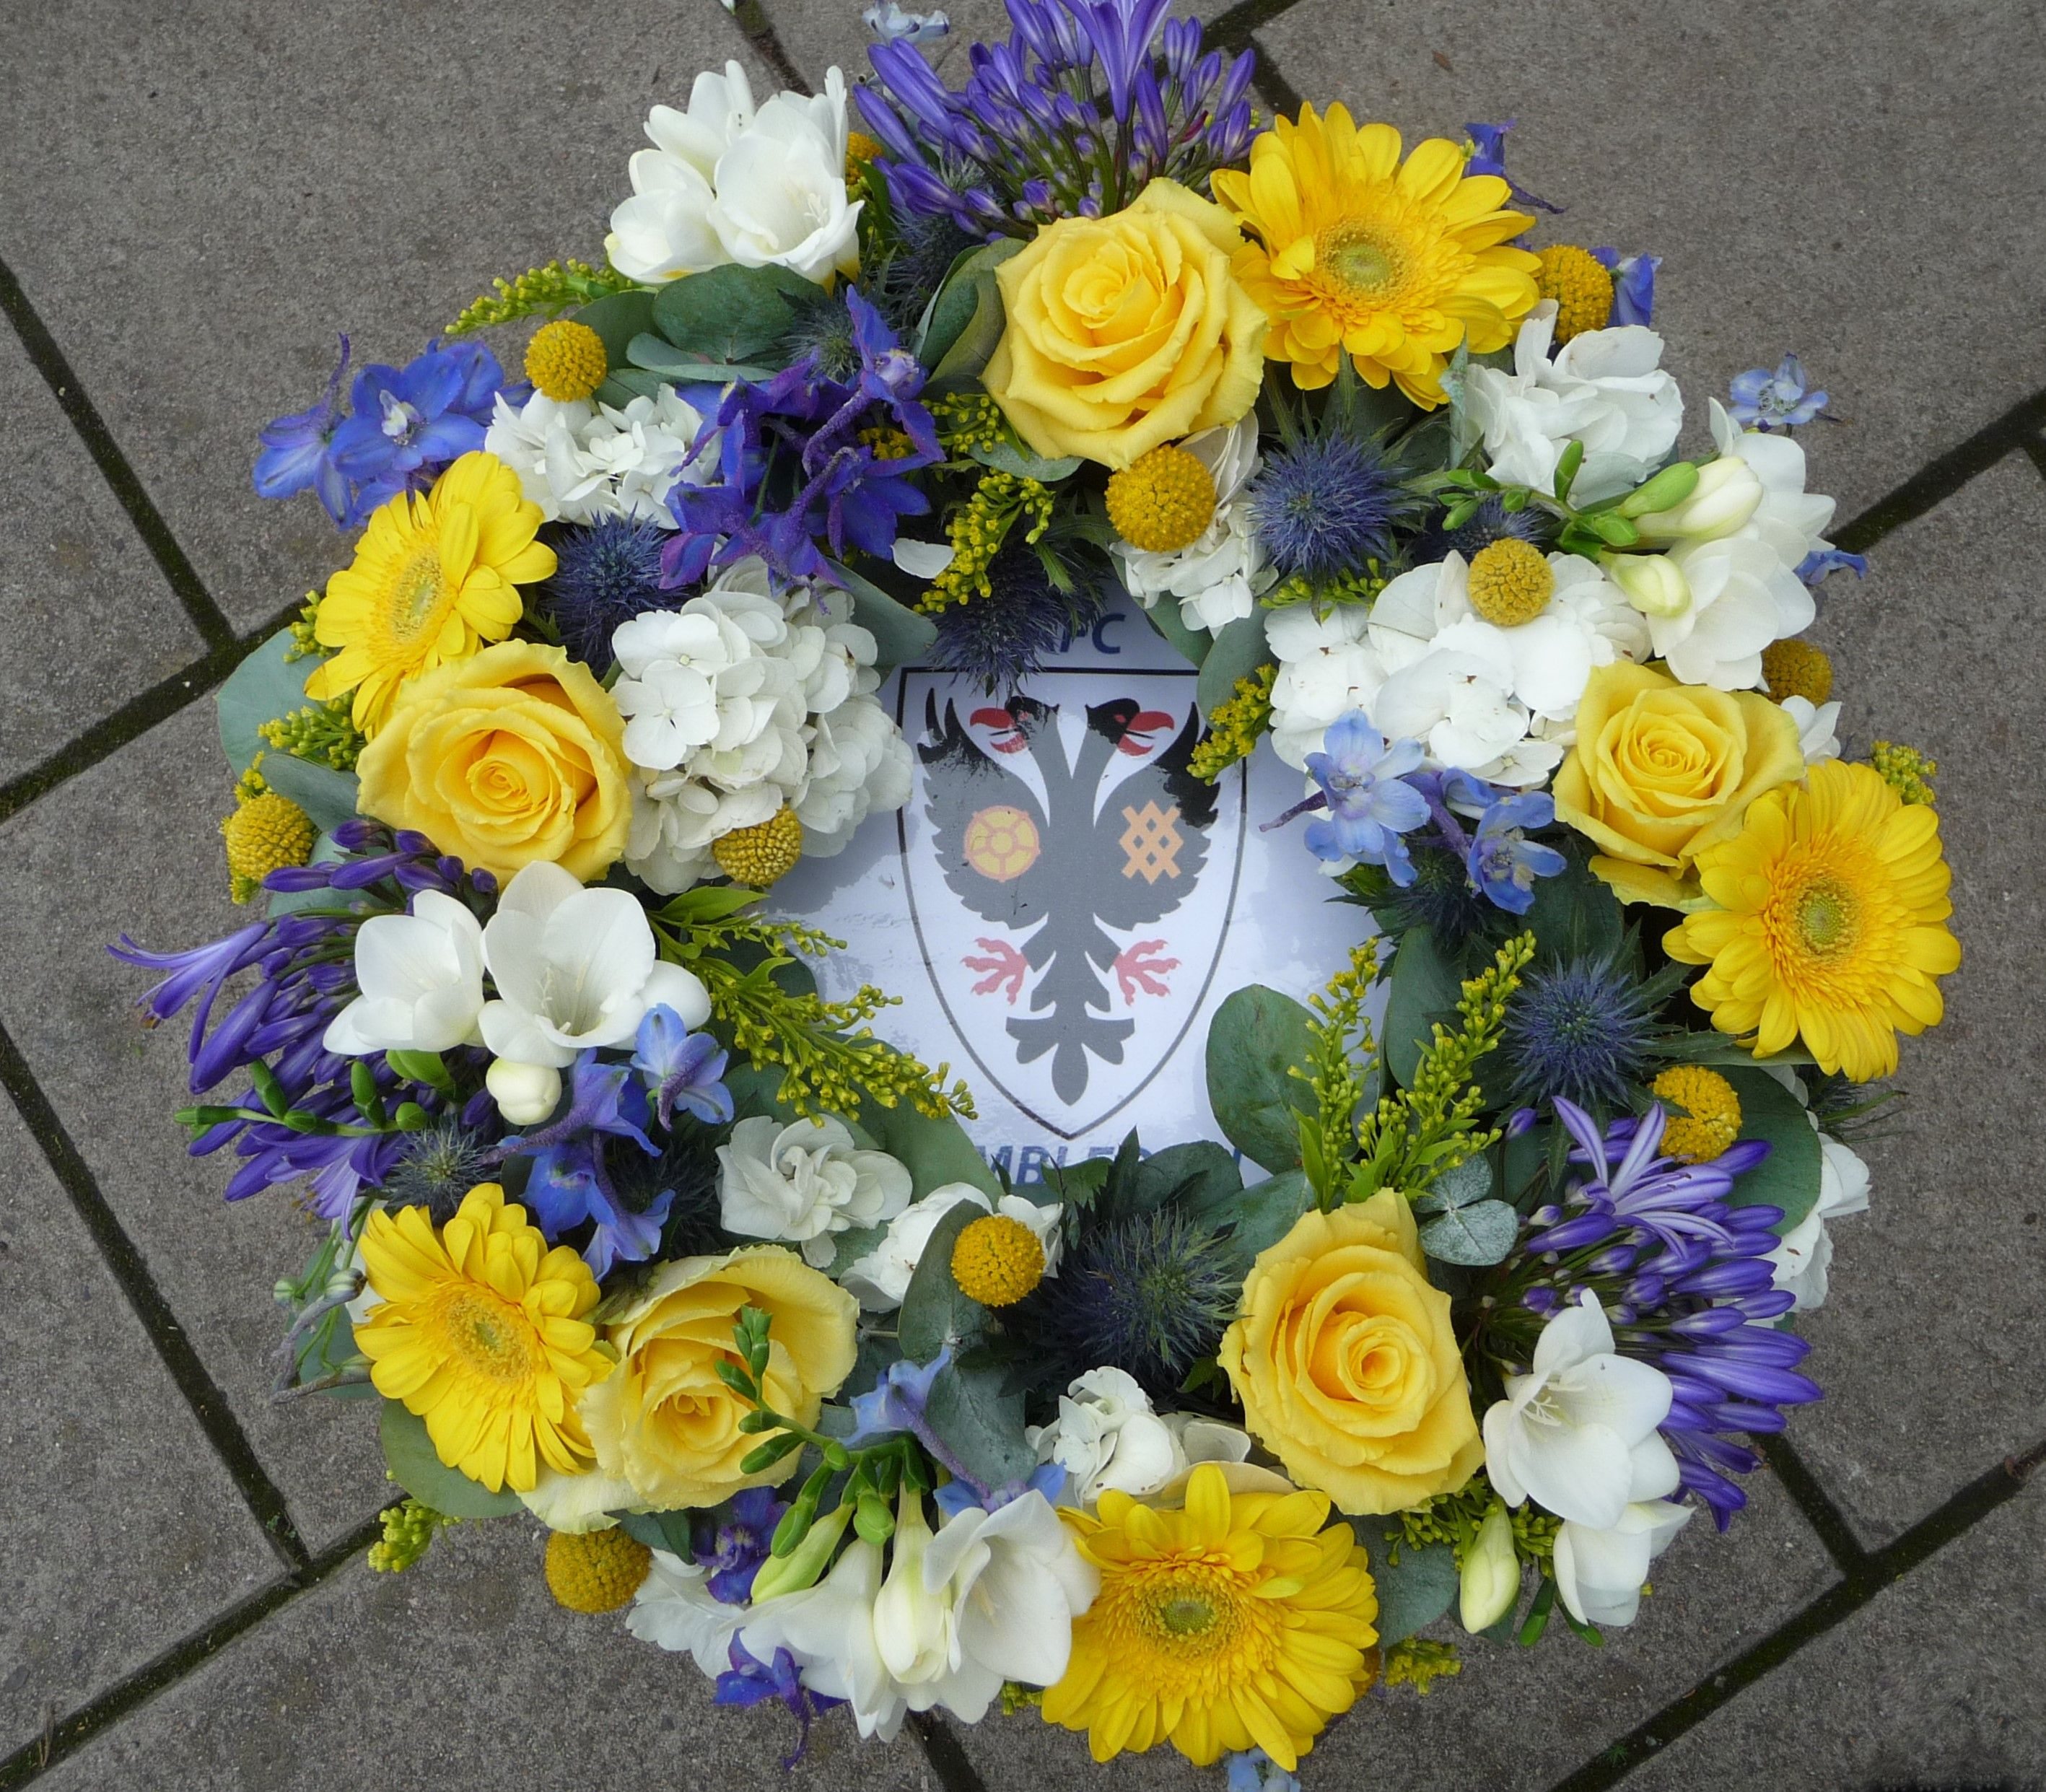 Bespoke funeral tribute for a fan of afc wimbledon football club bespoke funeral tribute for a fan of afc wimbledon football club izmirmasajfo